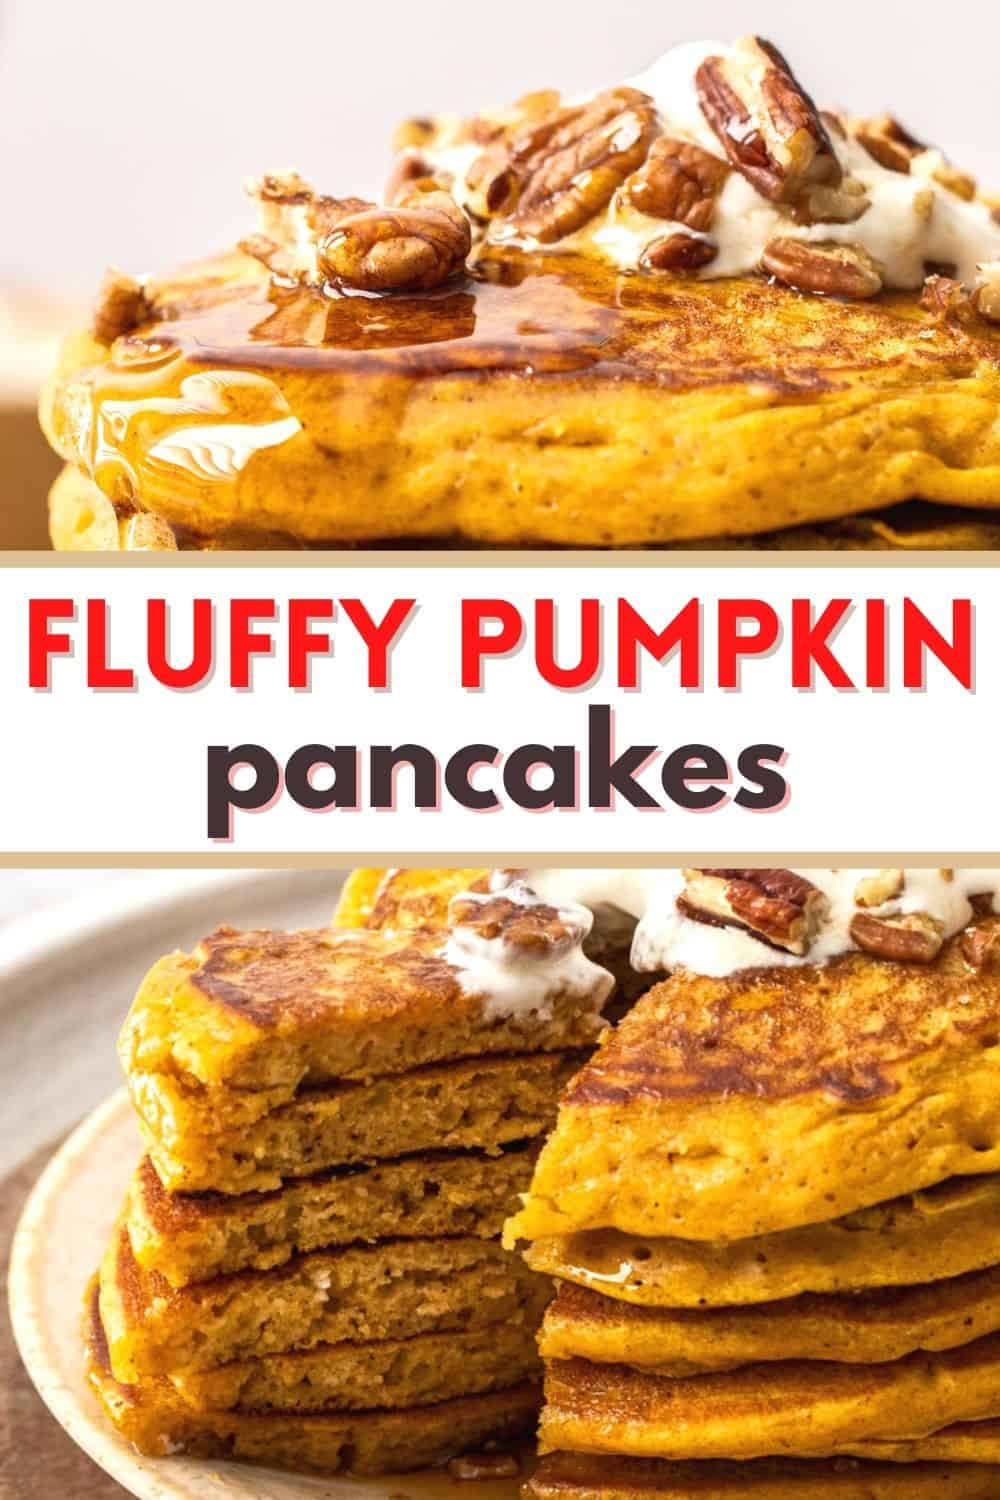 These thick and fluffy pumpkin pancakes are so moist and delicious! Dust with cinnamon sugar or maple syrup and a sprinkle of toasted pecans to warm up a chilly morning breakfast!